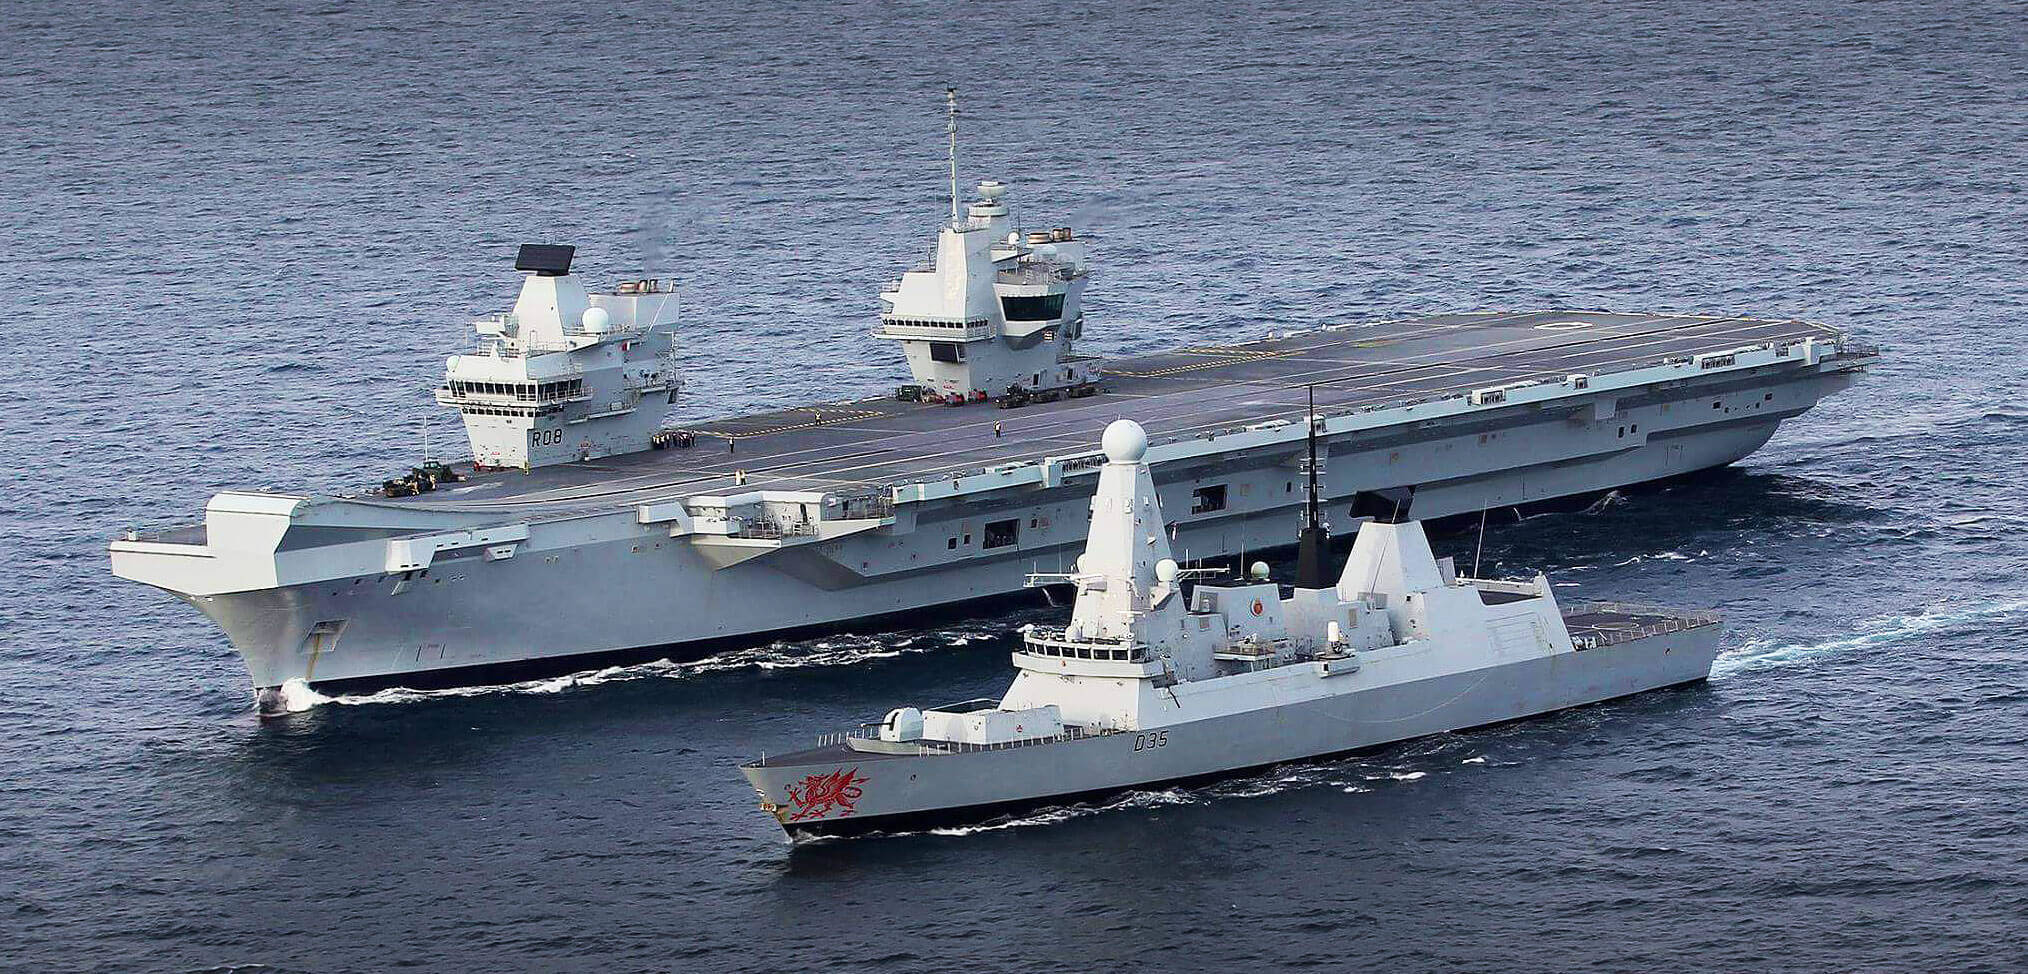 Royal Navy aircraft carriers  – vulnerable or fit for the fight?